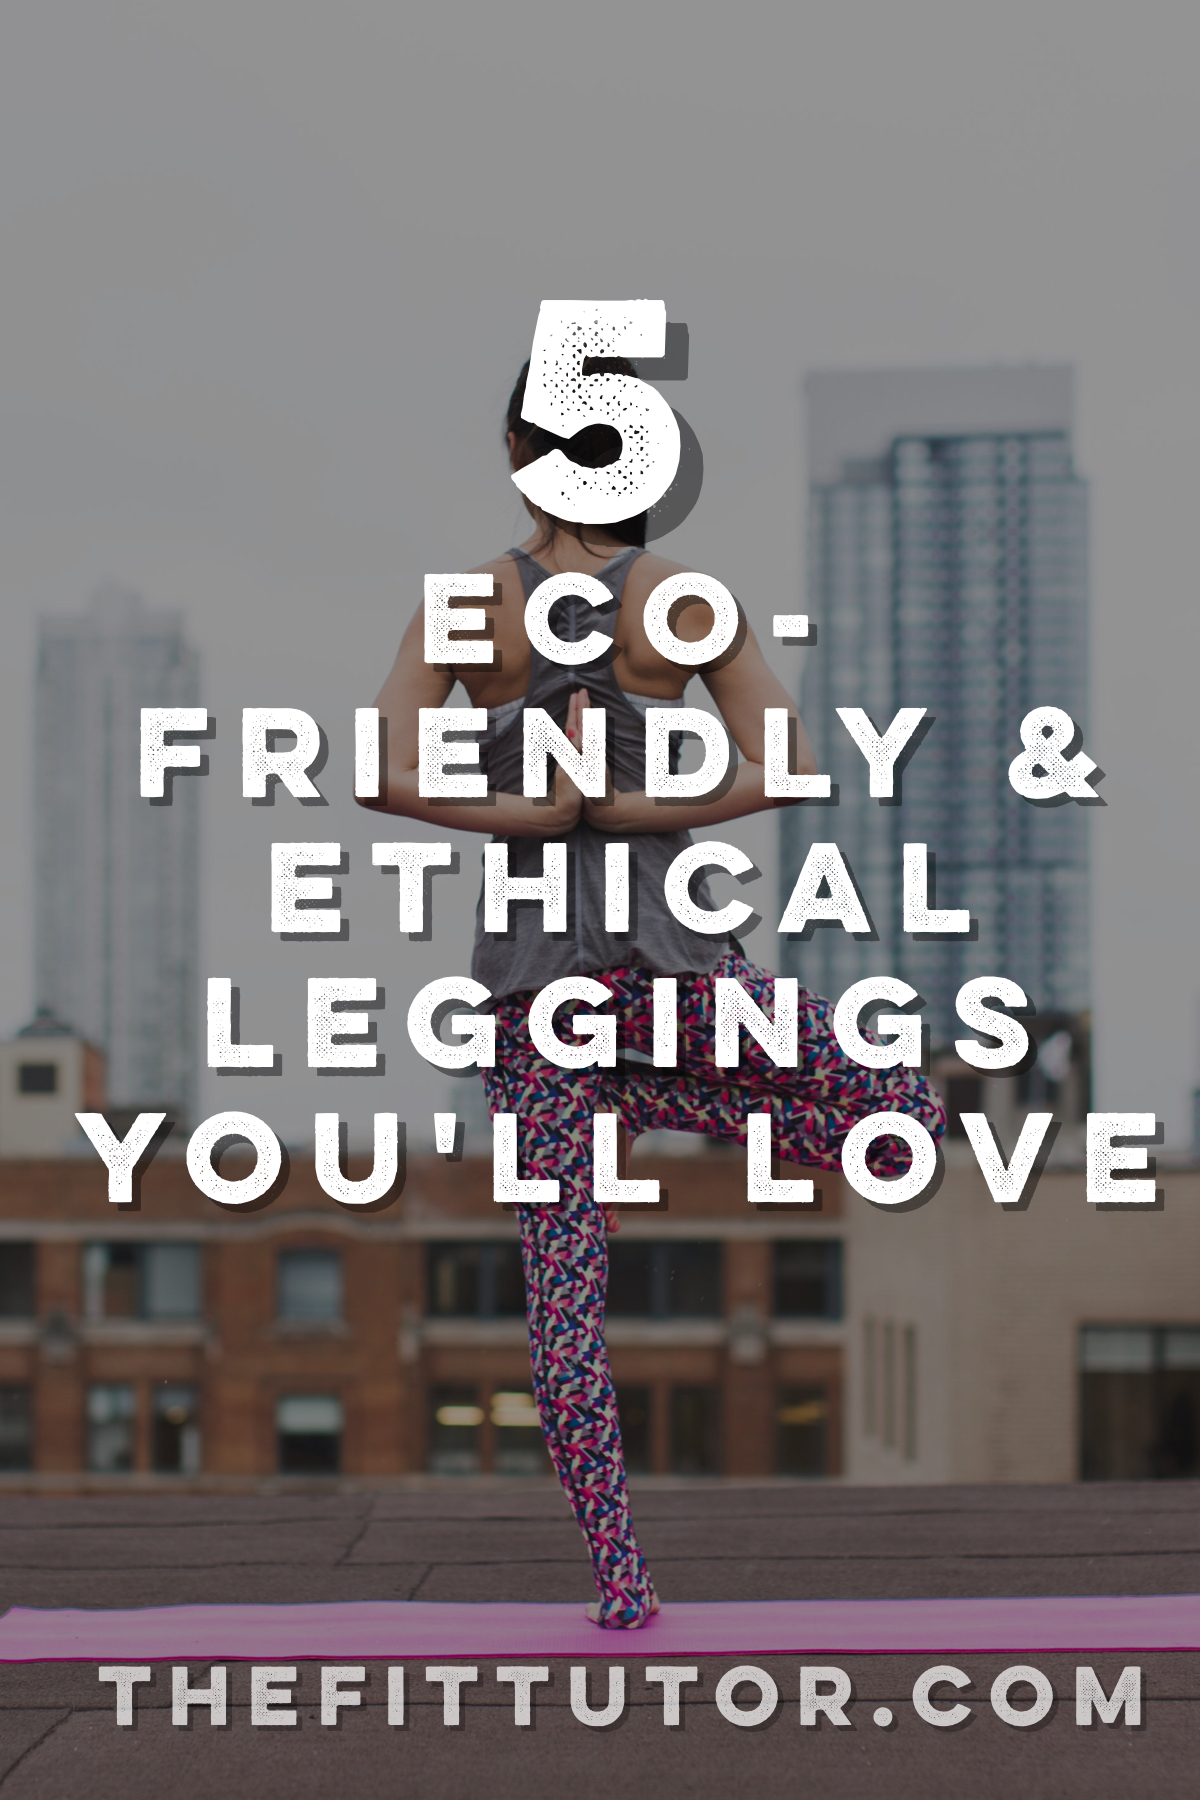 Look good while supporting things you care about- ethical and eco-friendly leggings that every woman should own!